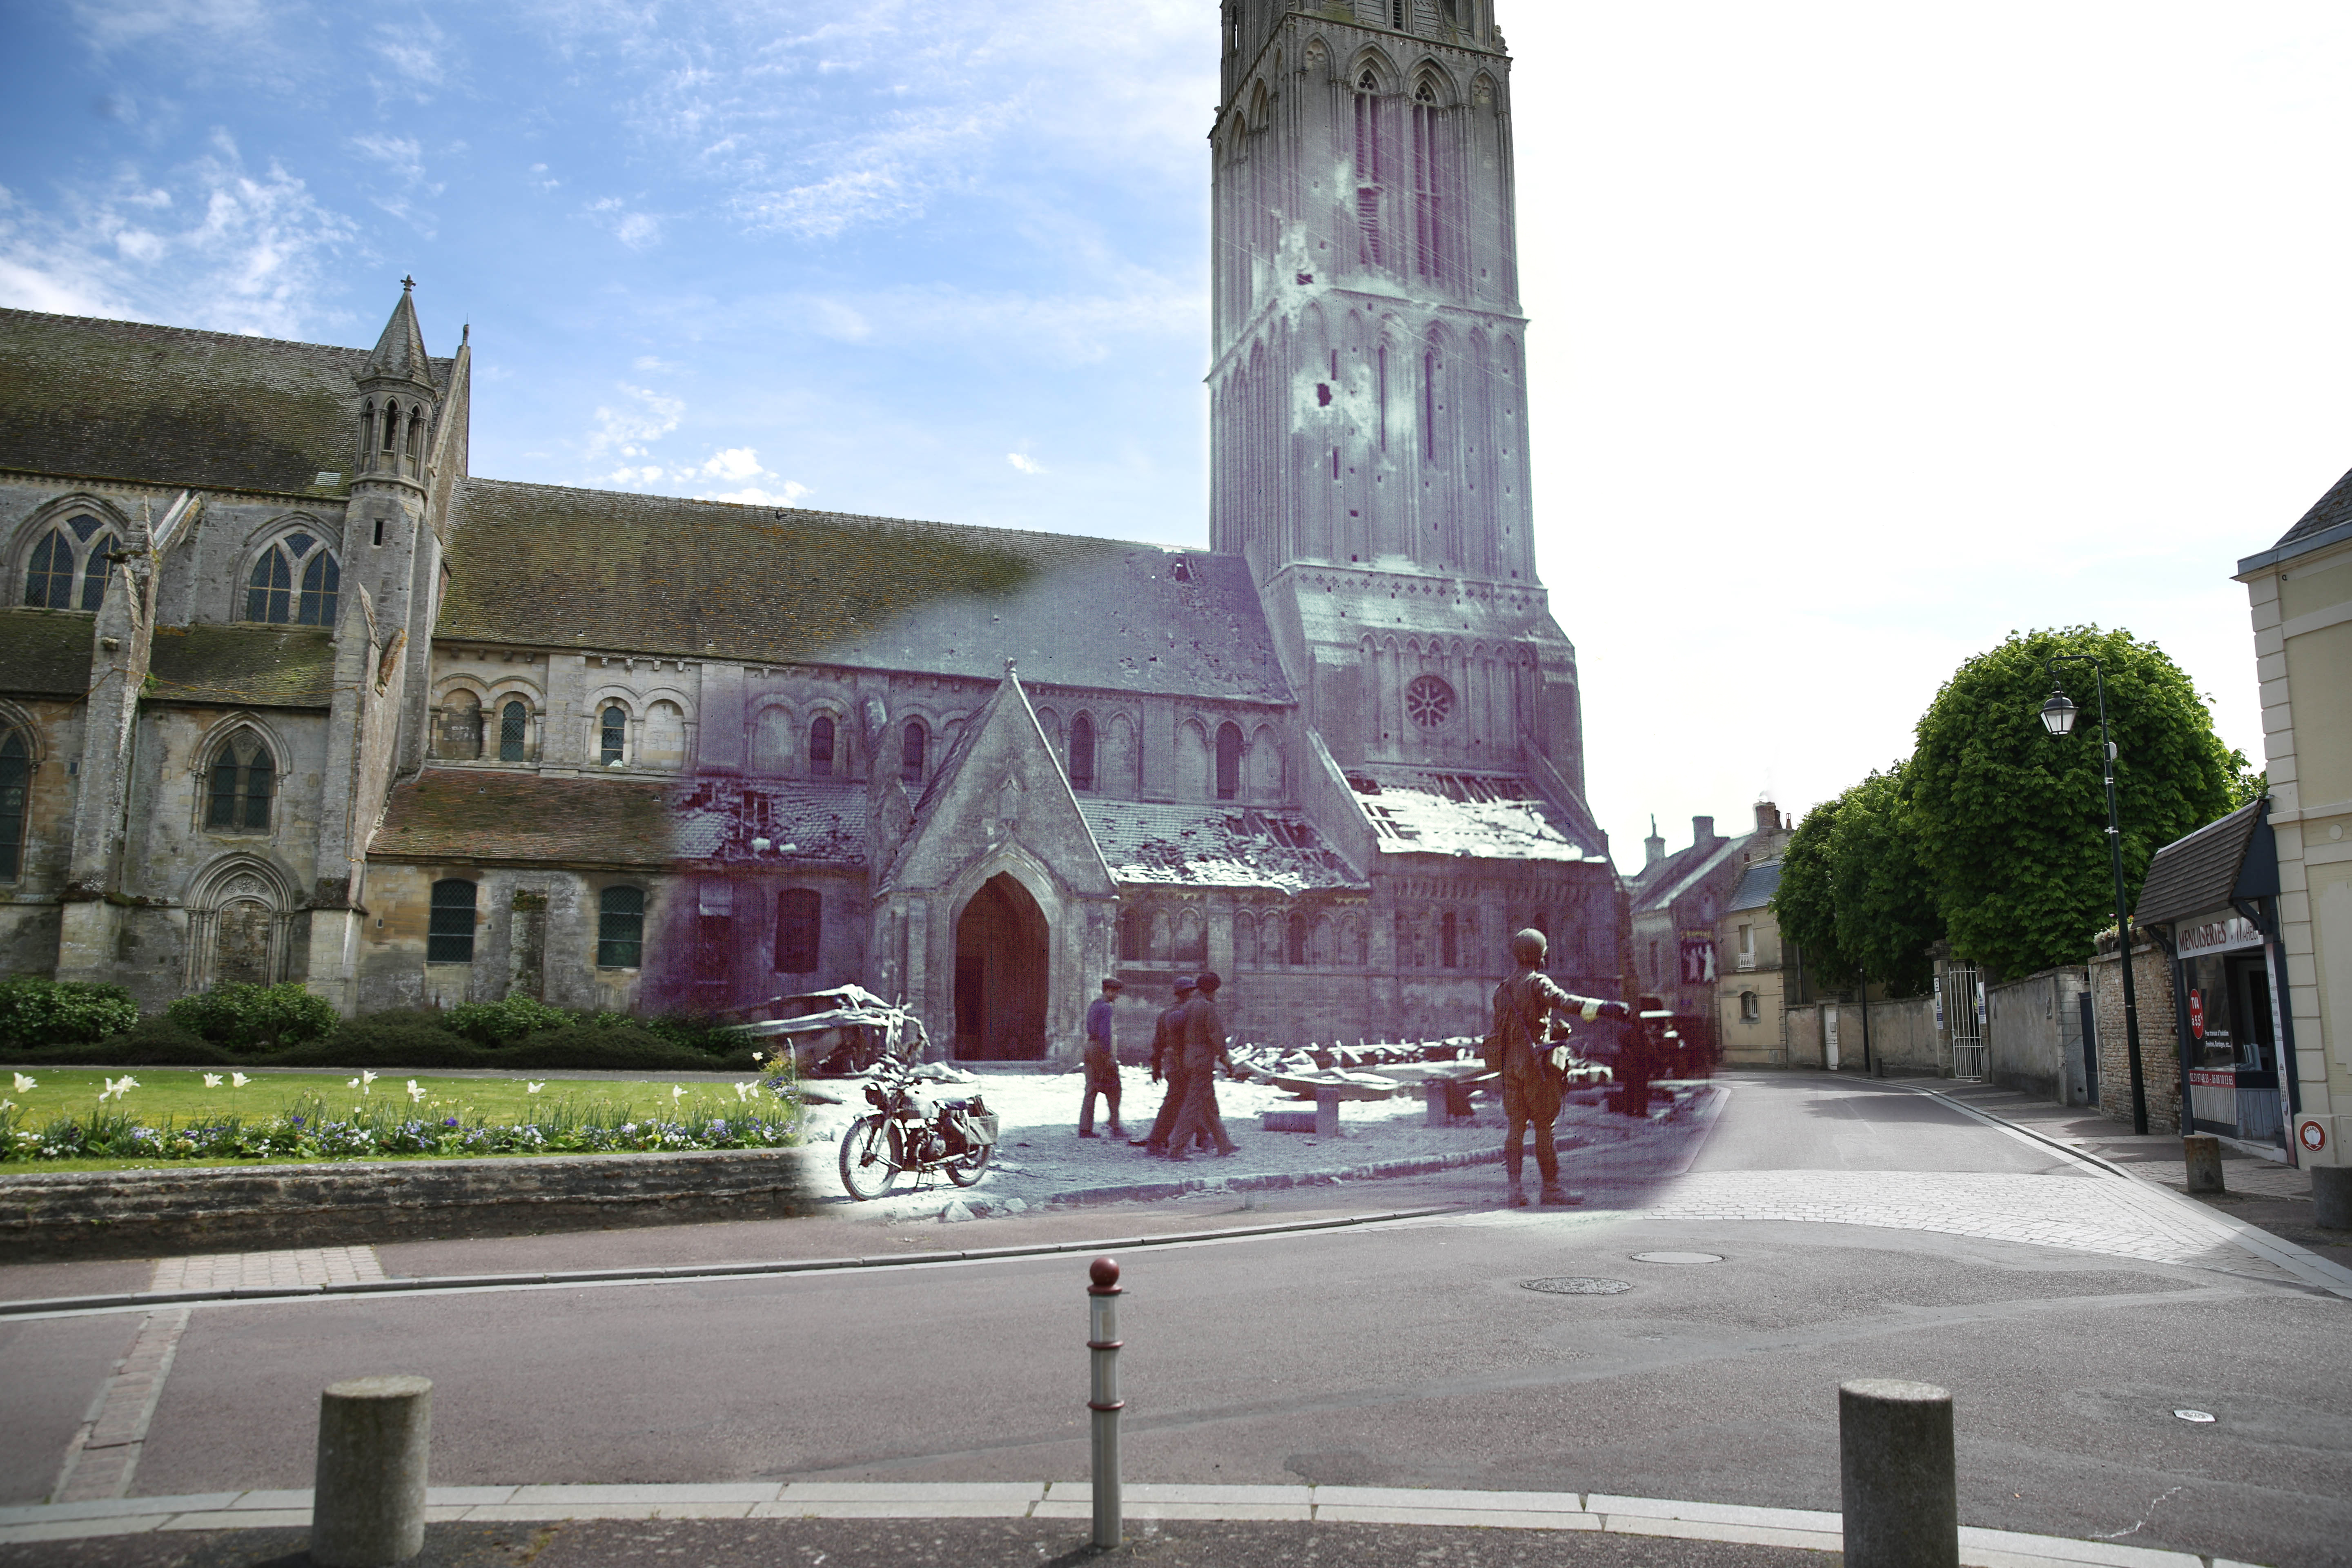 A view of the street area and Notre-Dame Nativity church on May 5, 2014 in Bernieres-sur-Mer, France. Overlay: A Canadian soldier directs traffic in Bernieres-sur-Mer on June 6, 1944.